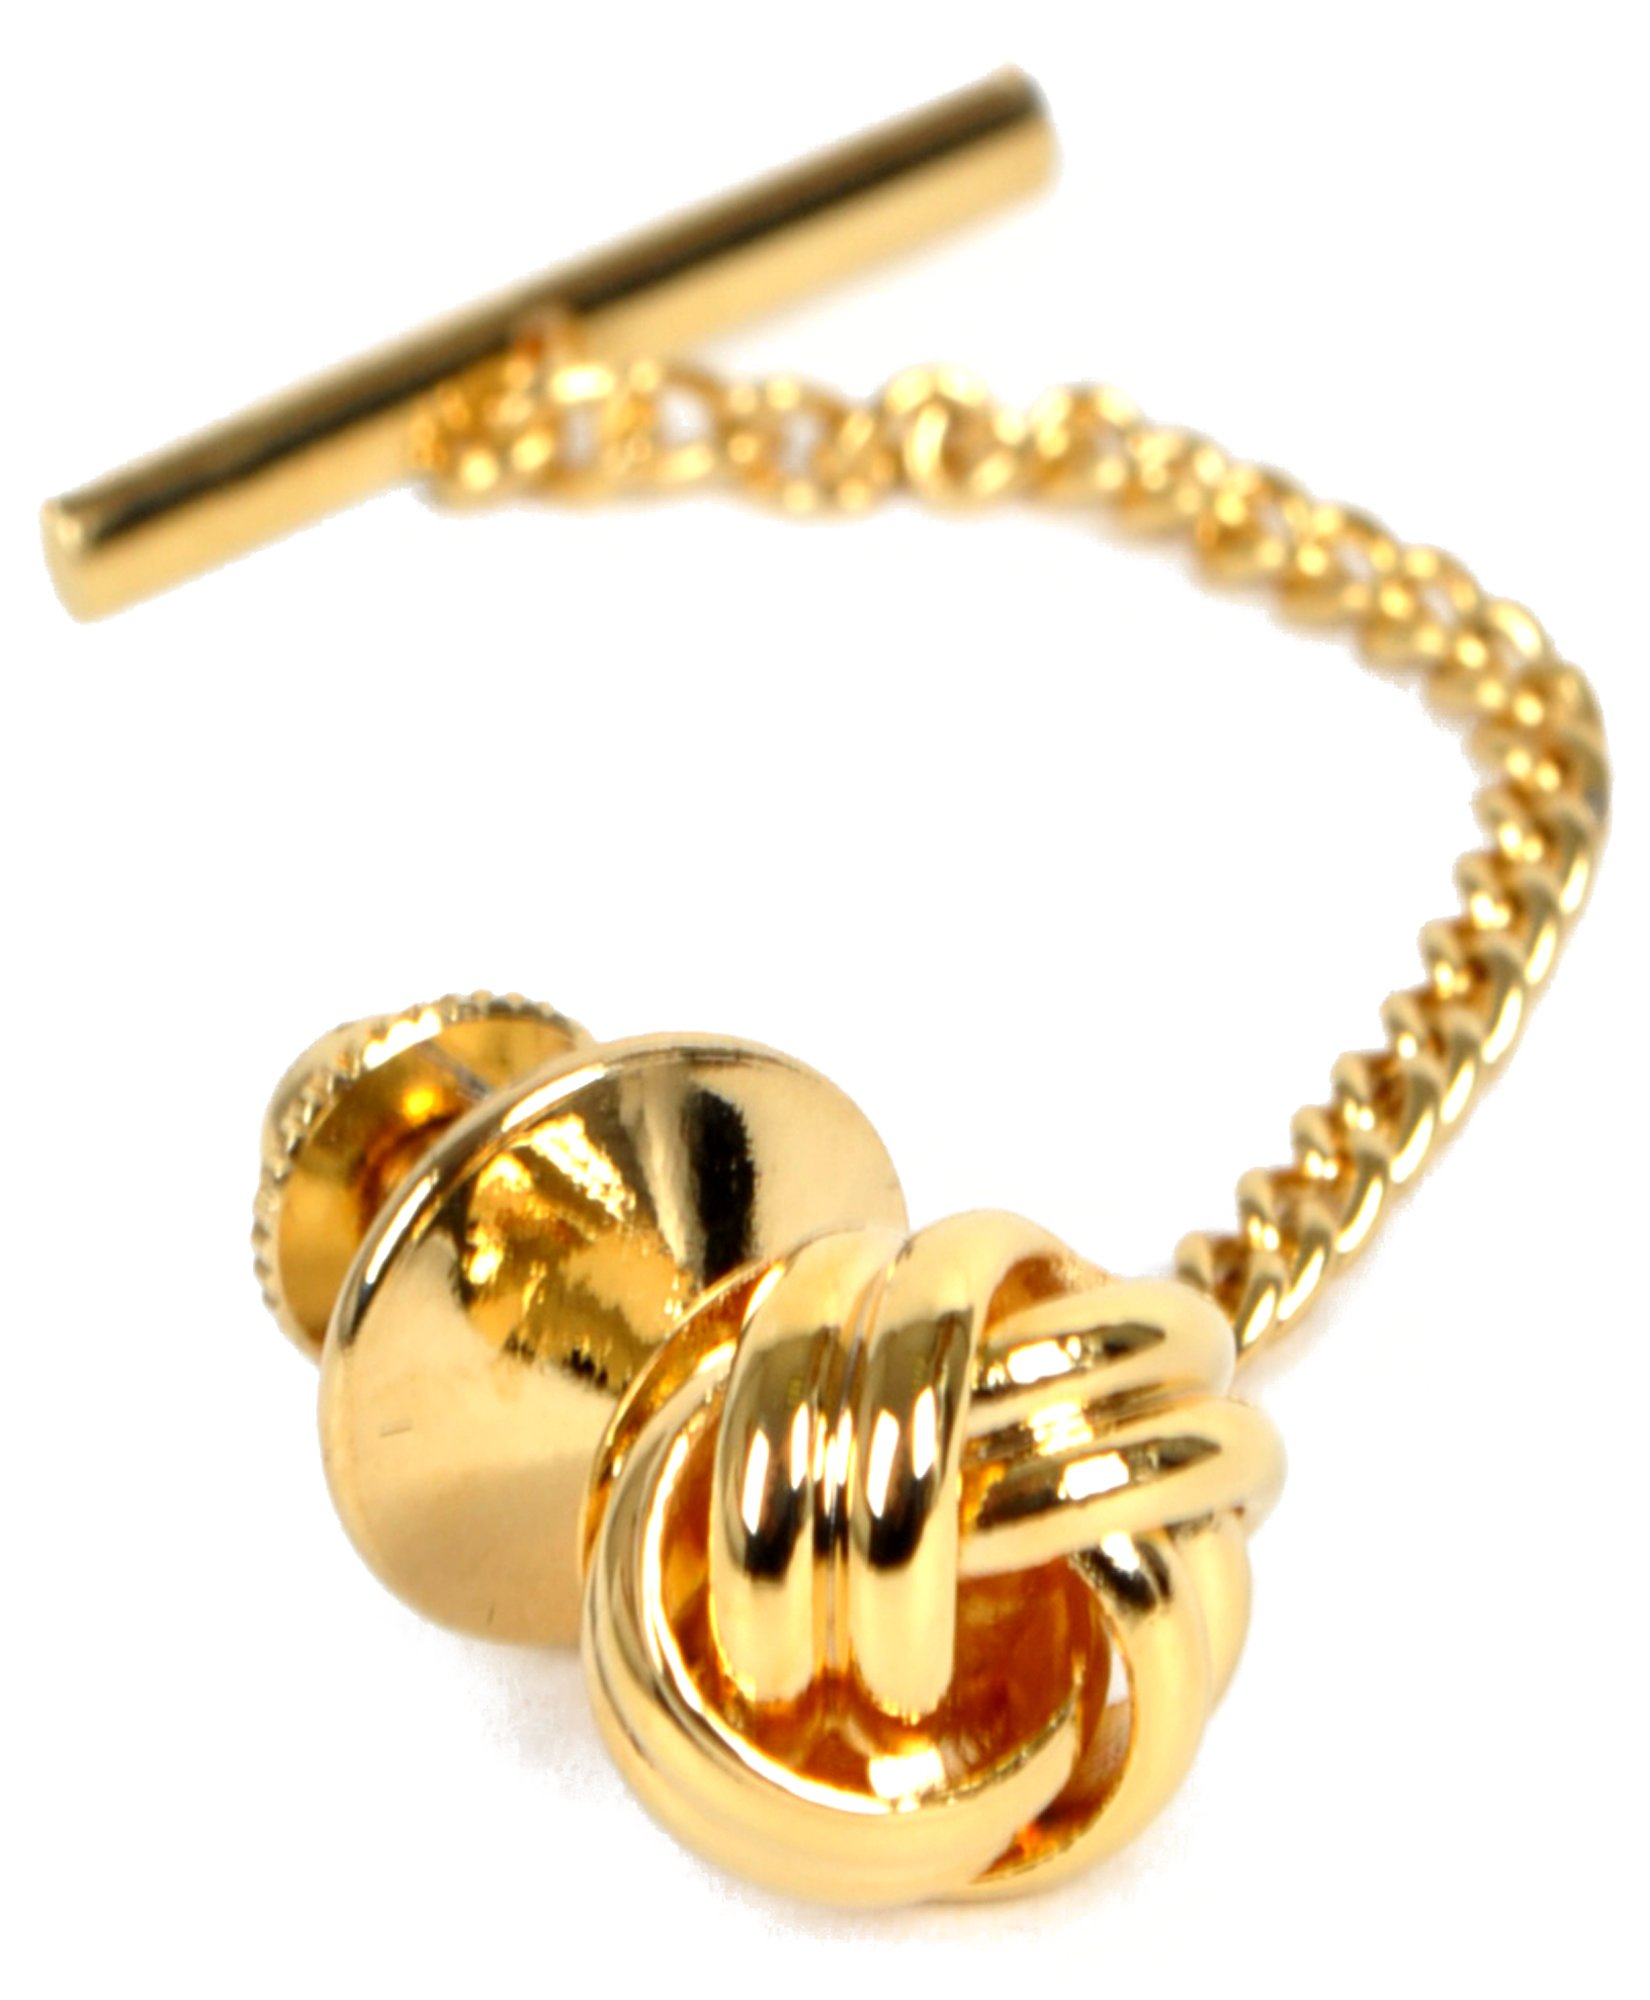 boxed-gifts Sailor's Knot Premium Tie Tack (Gold)